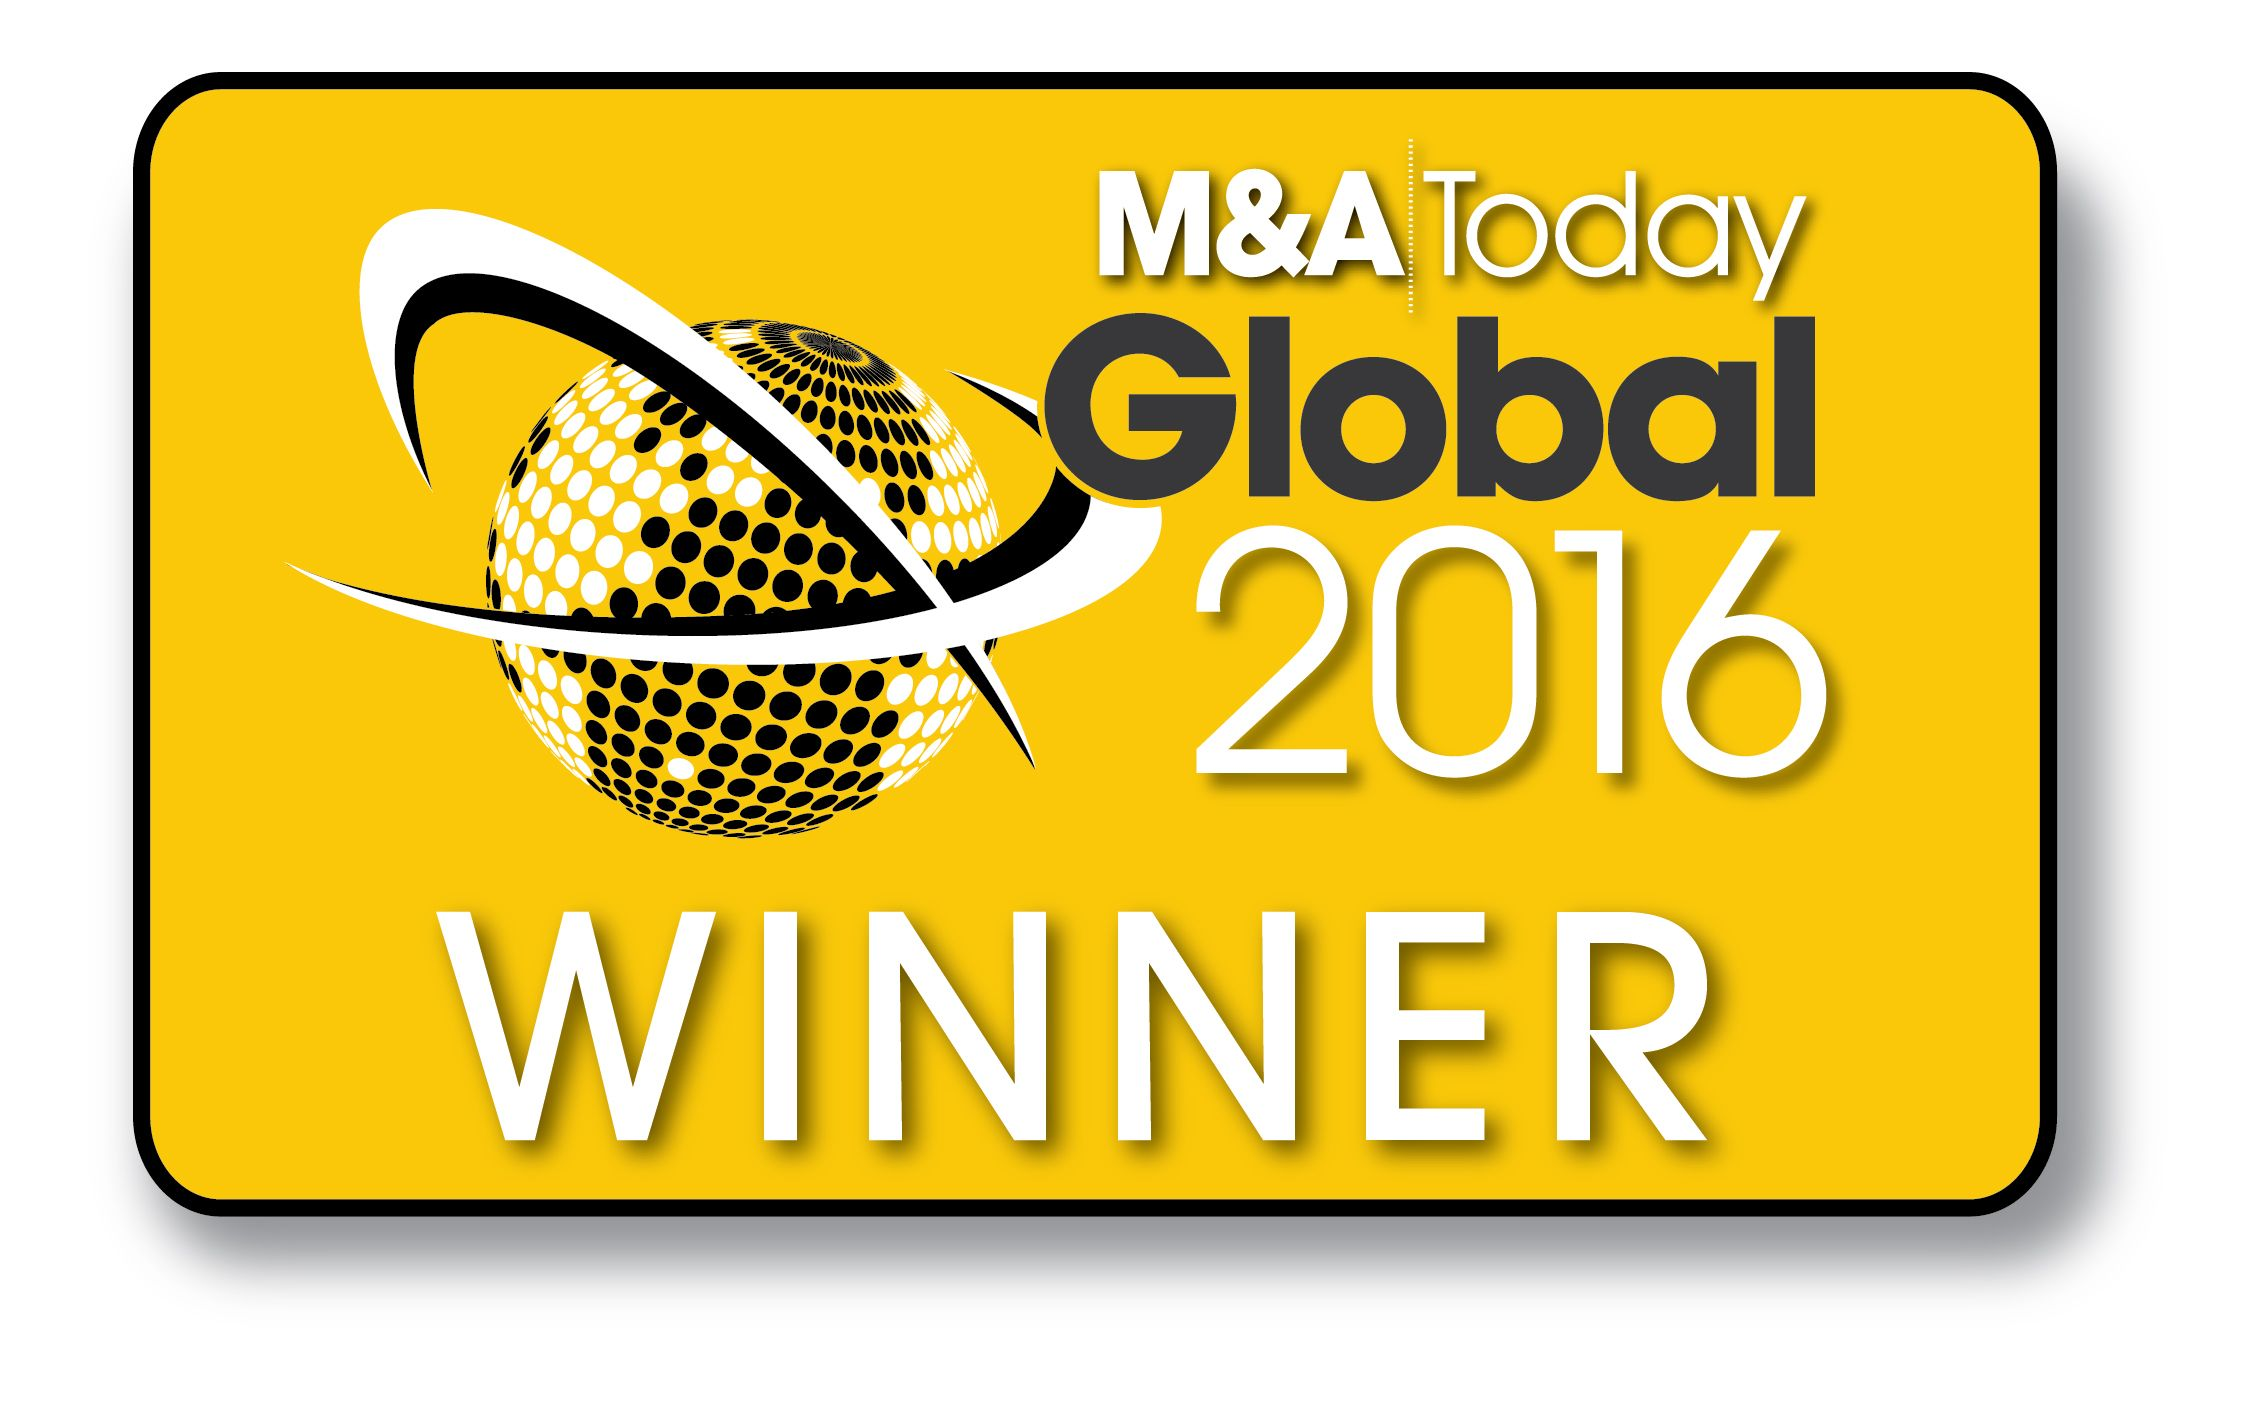 M&A Today Global